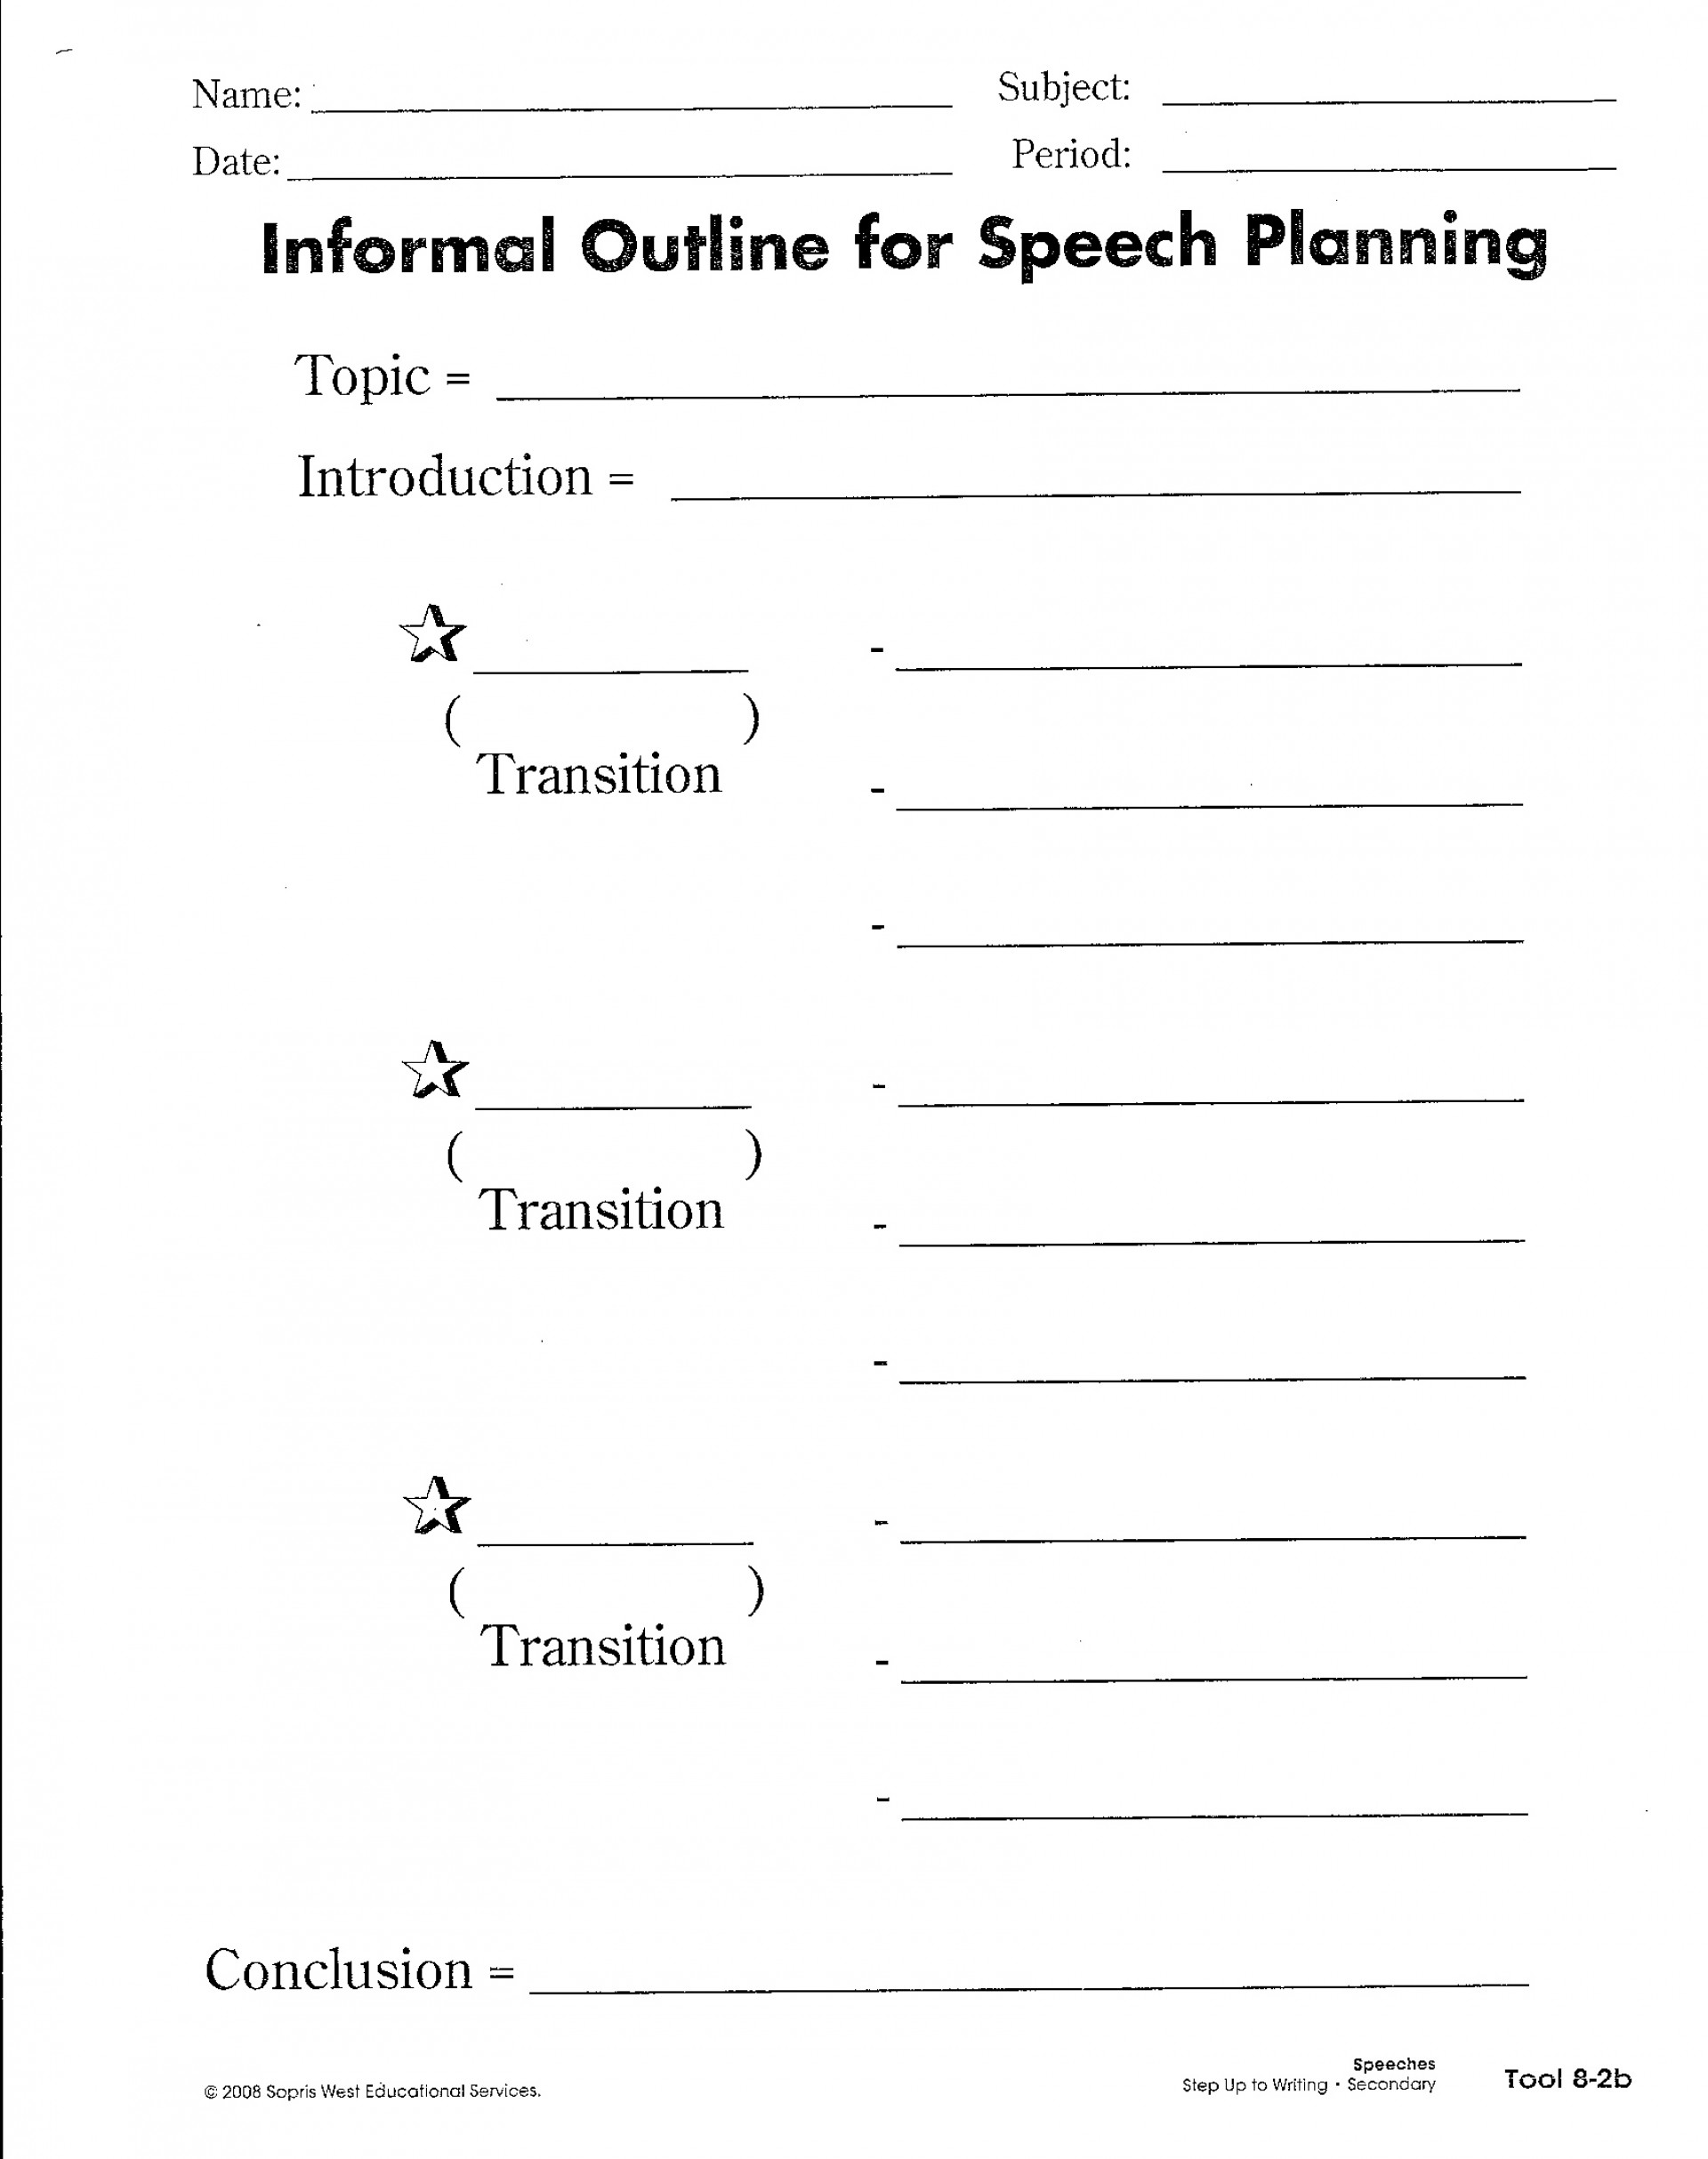 023 Basic Research Paper Outline Suw Planning Your Speech With An Informal Imposing Simple Easy 1920